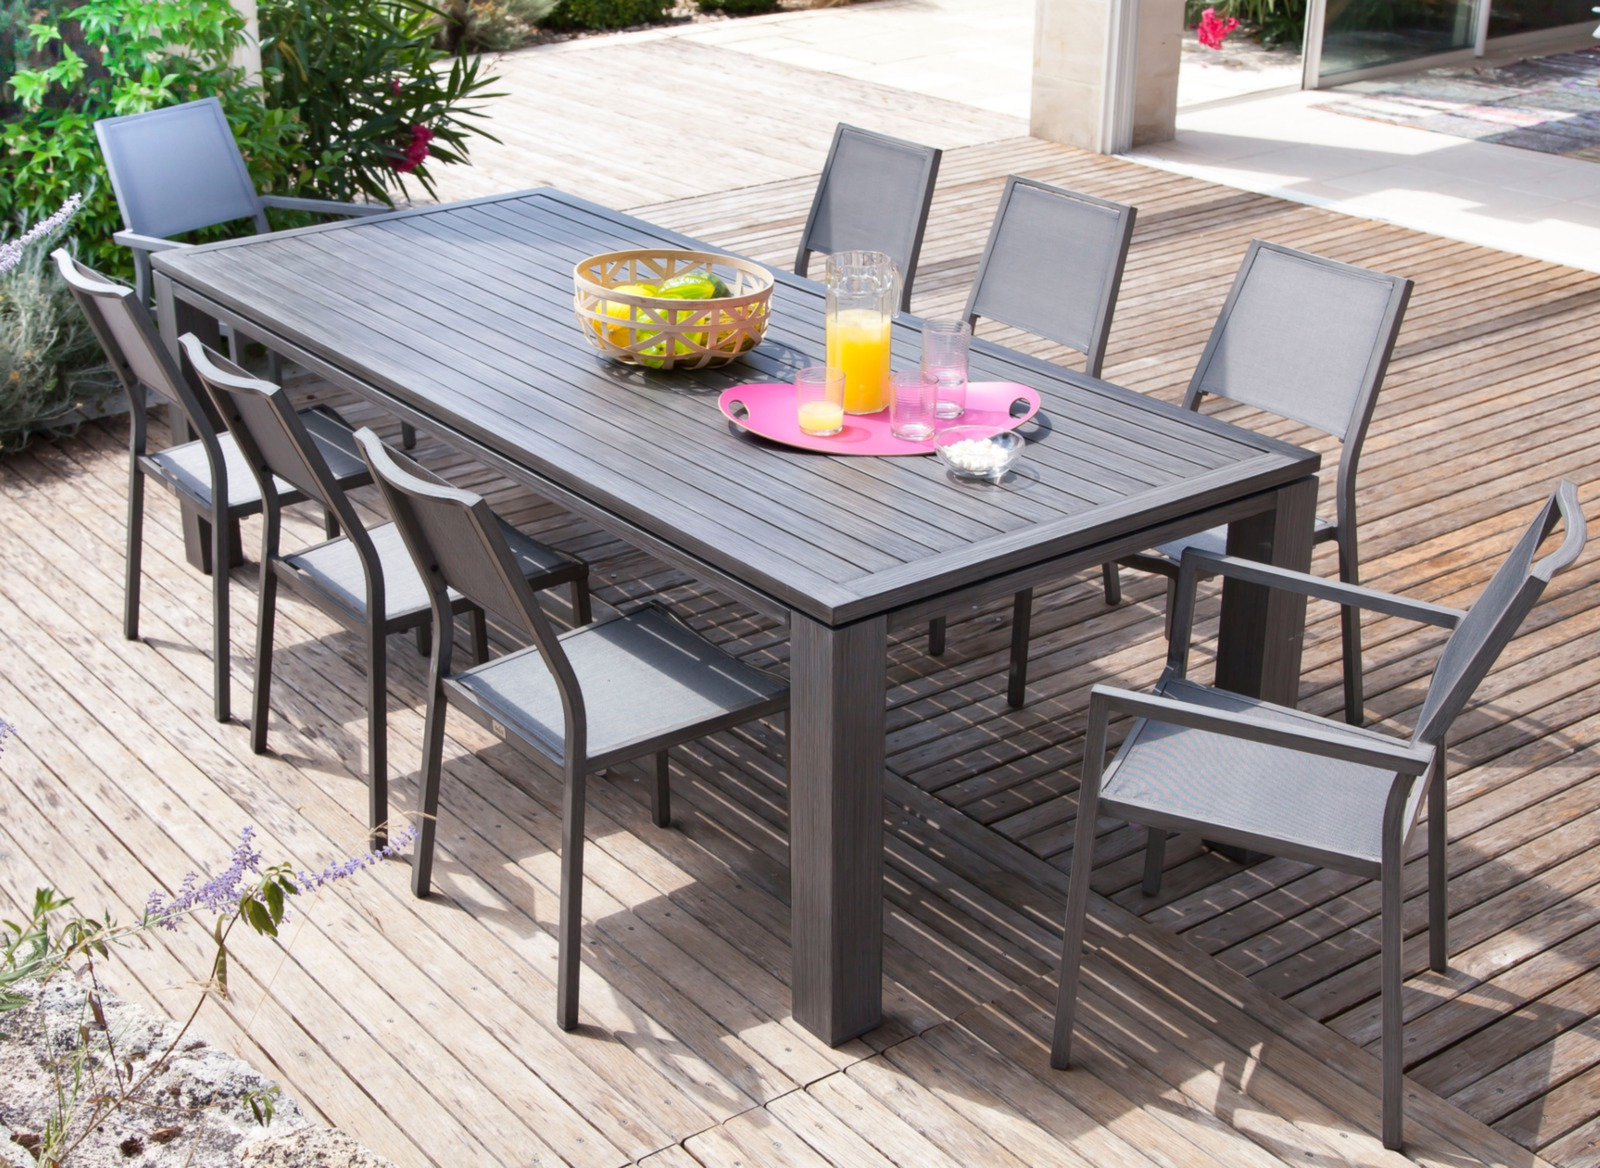 Ensemble Table Chaise Avis Ensemble Table Jardin Des Comparatifs Des Tests Le